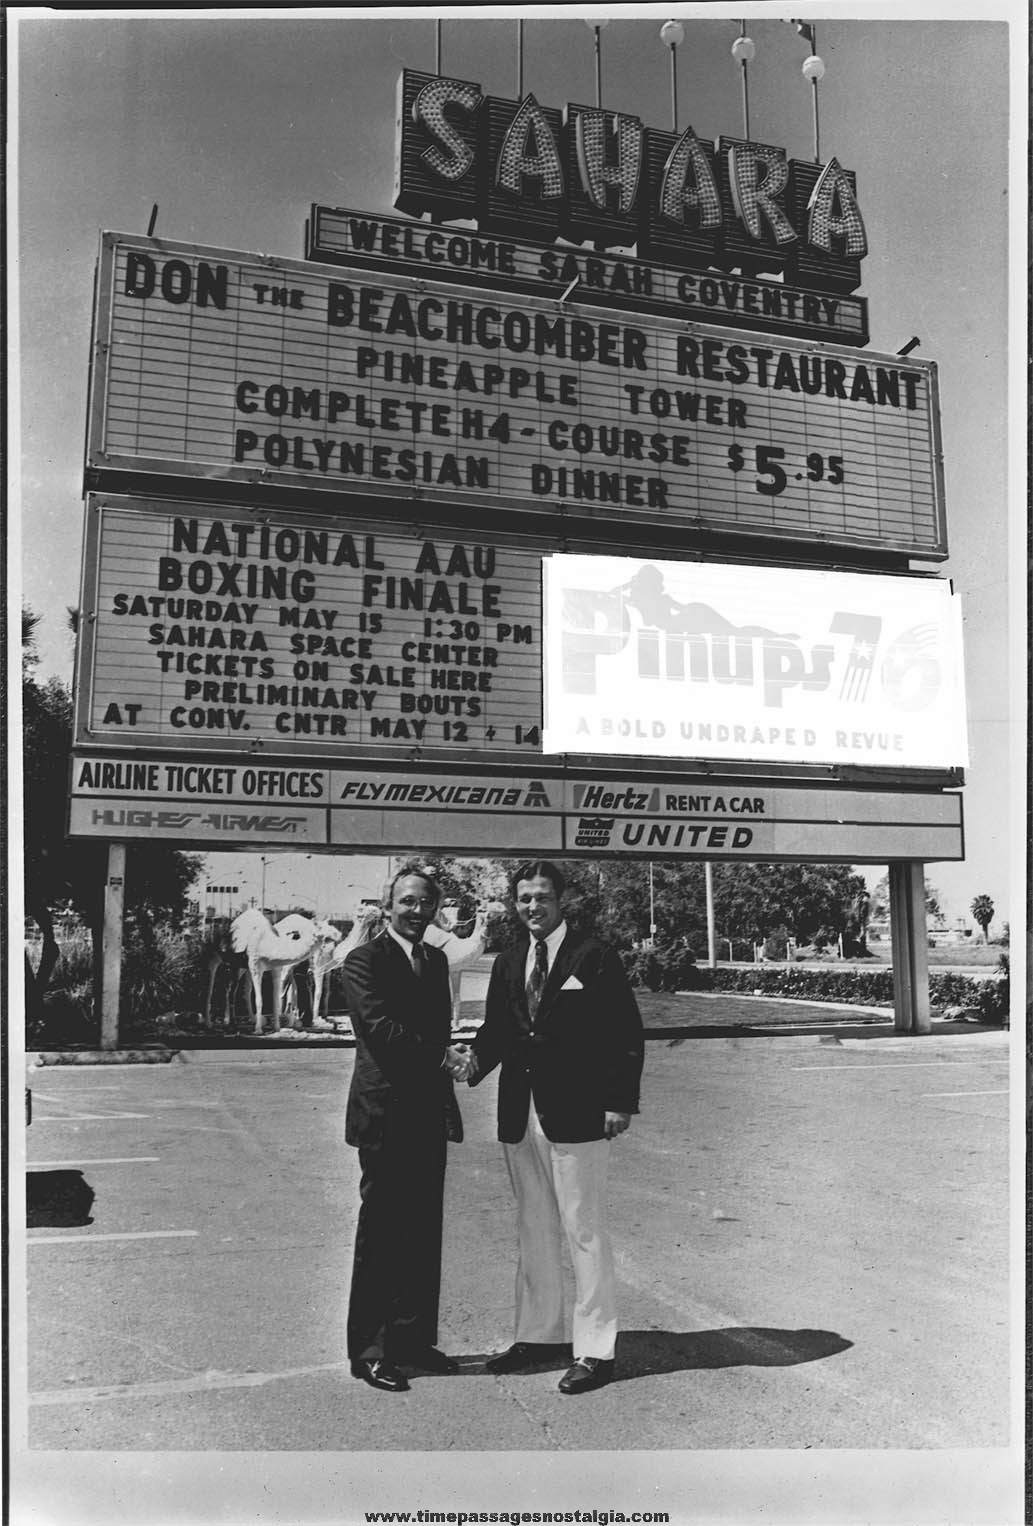 1976 Sahara Casino &: Hotel Event Sign Promotional Black & White Photograph Negative